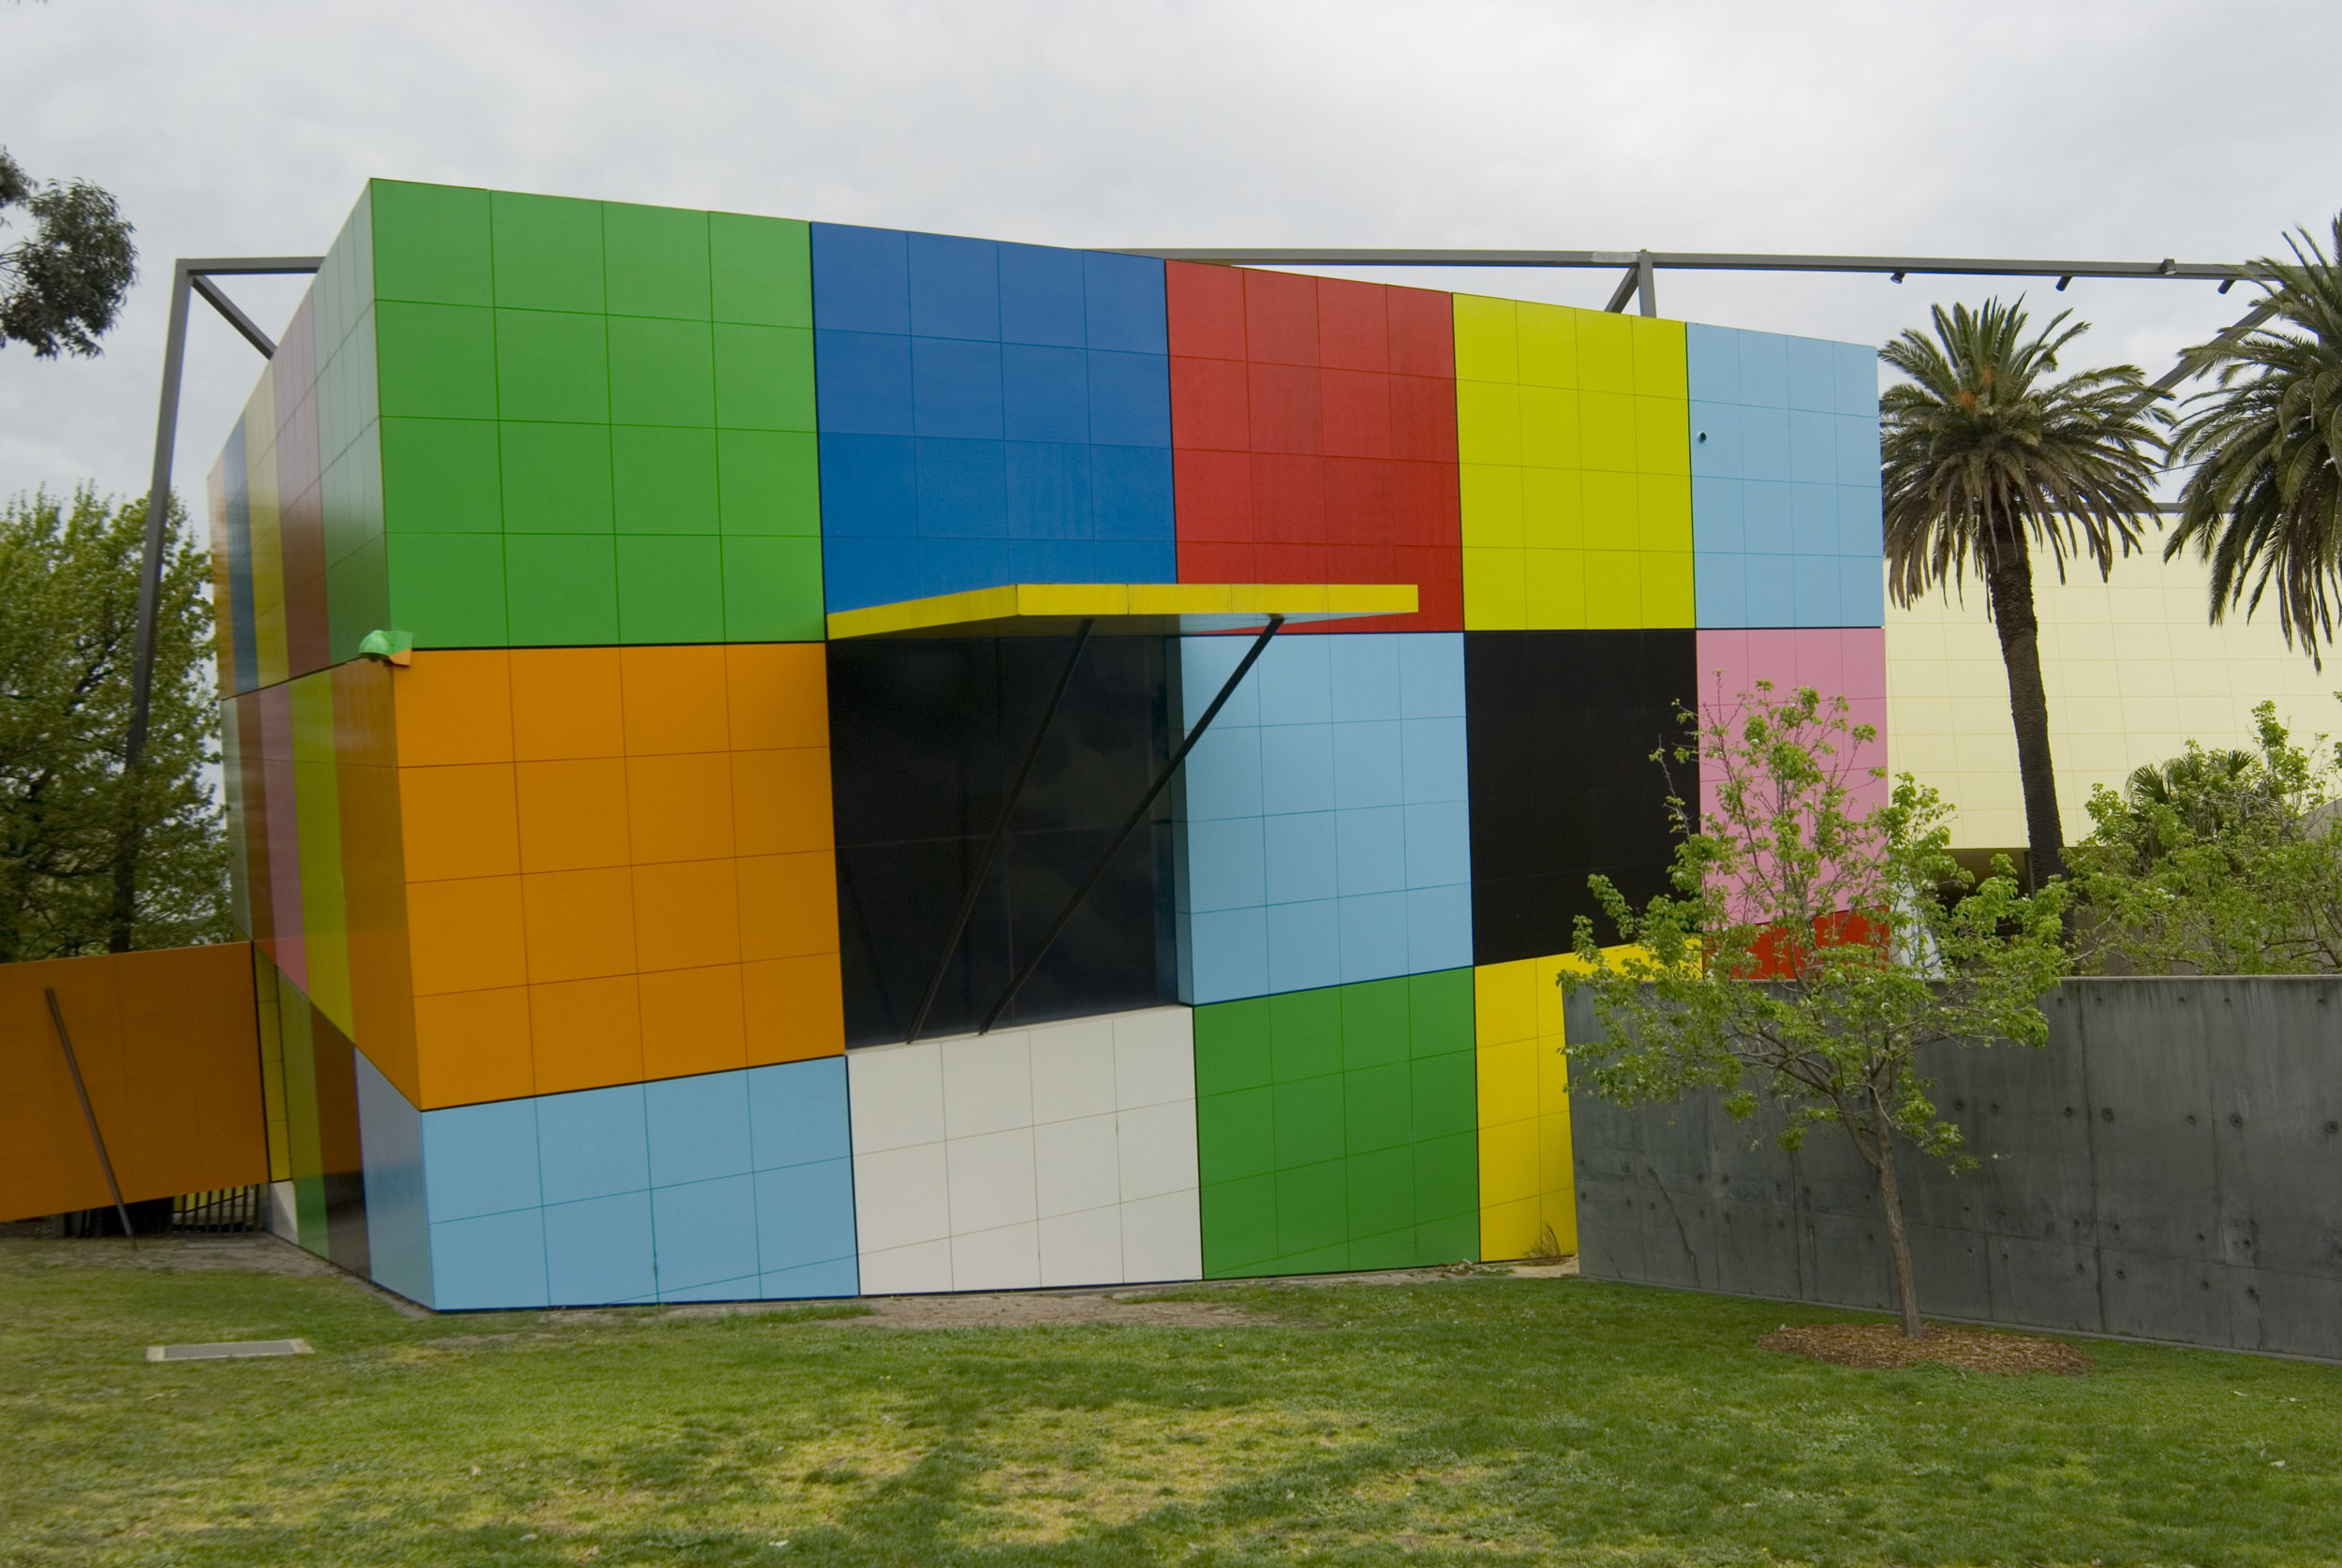 Colourful building blocks and architectural design on the exterior of the Melbourne Museum building in Australia.